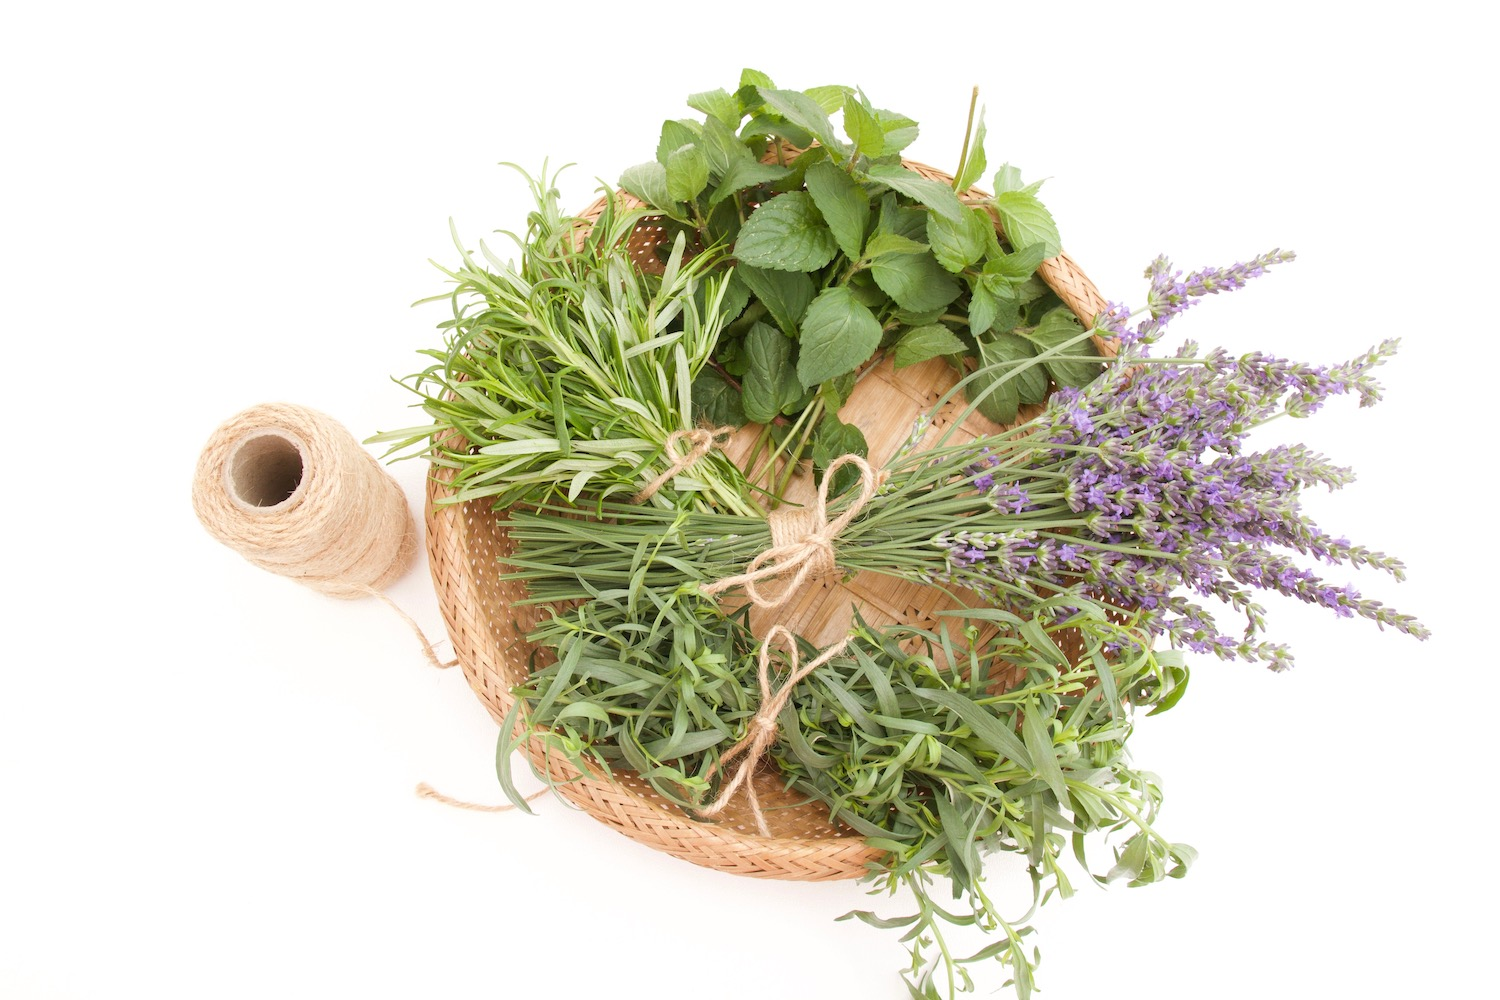 cut herbs and lavender